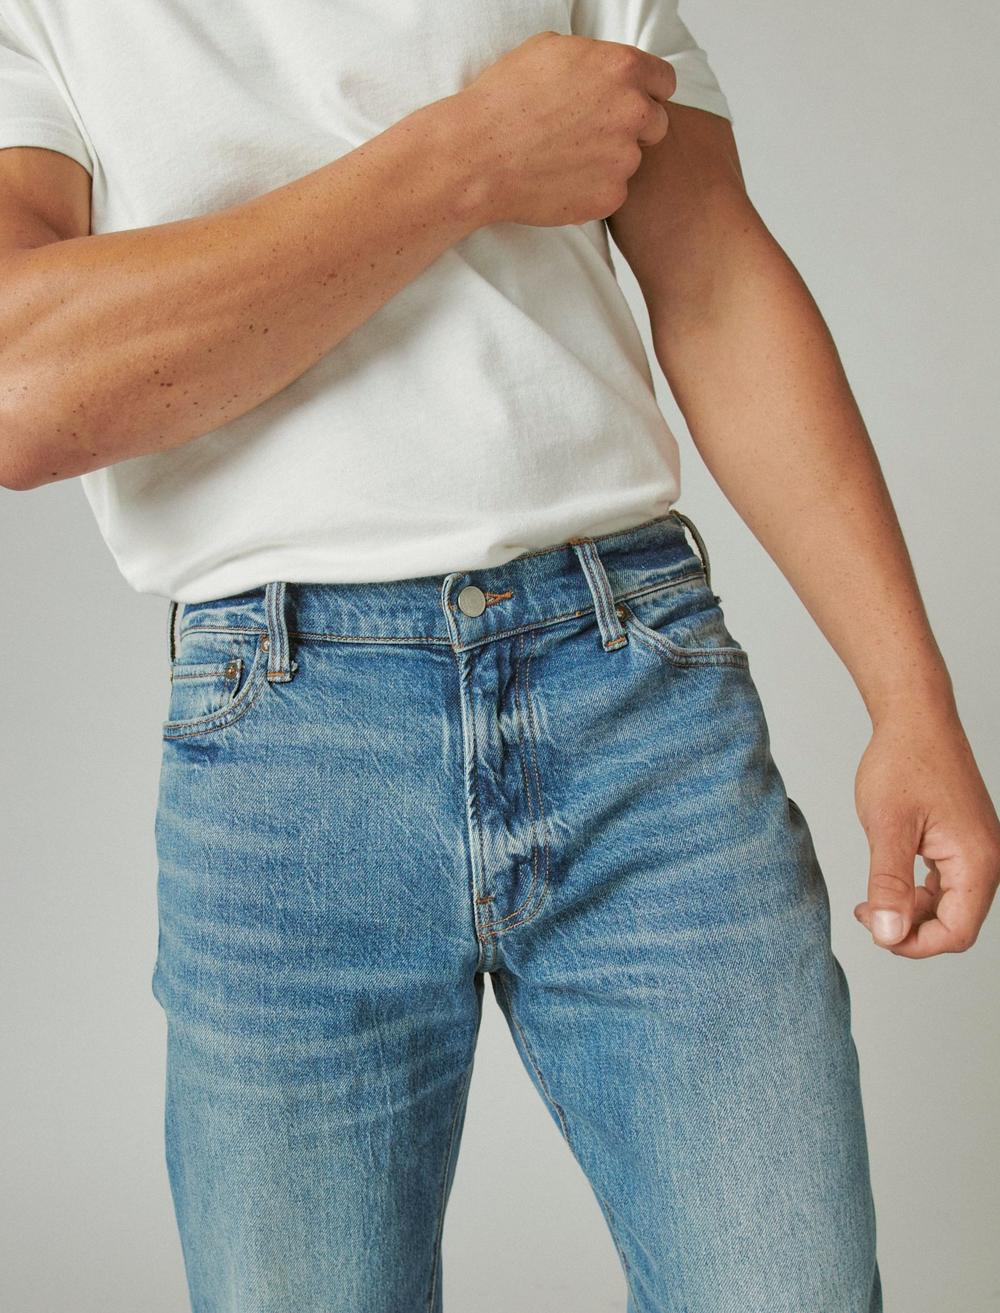 EASY RIDER BOOTCUT JEAN, image 6